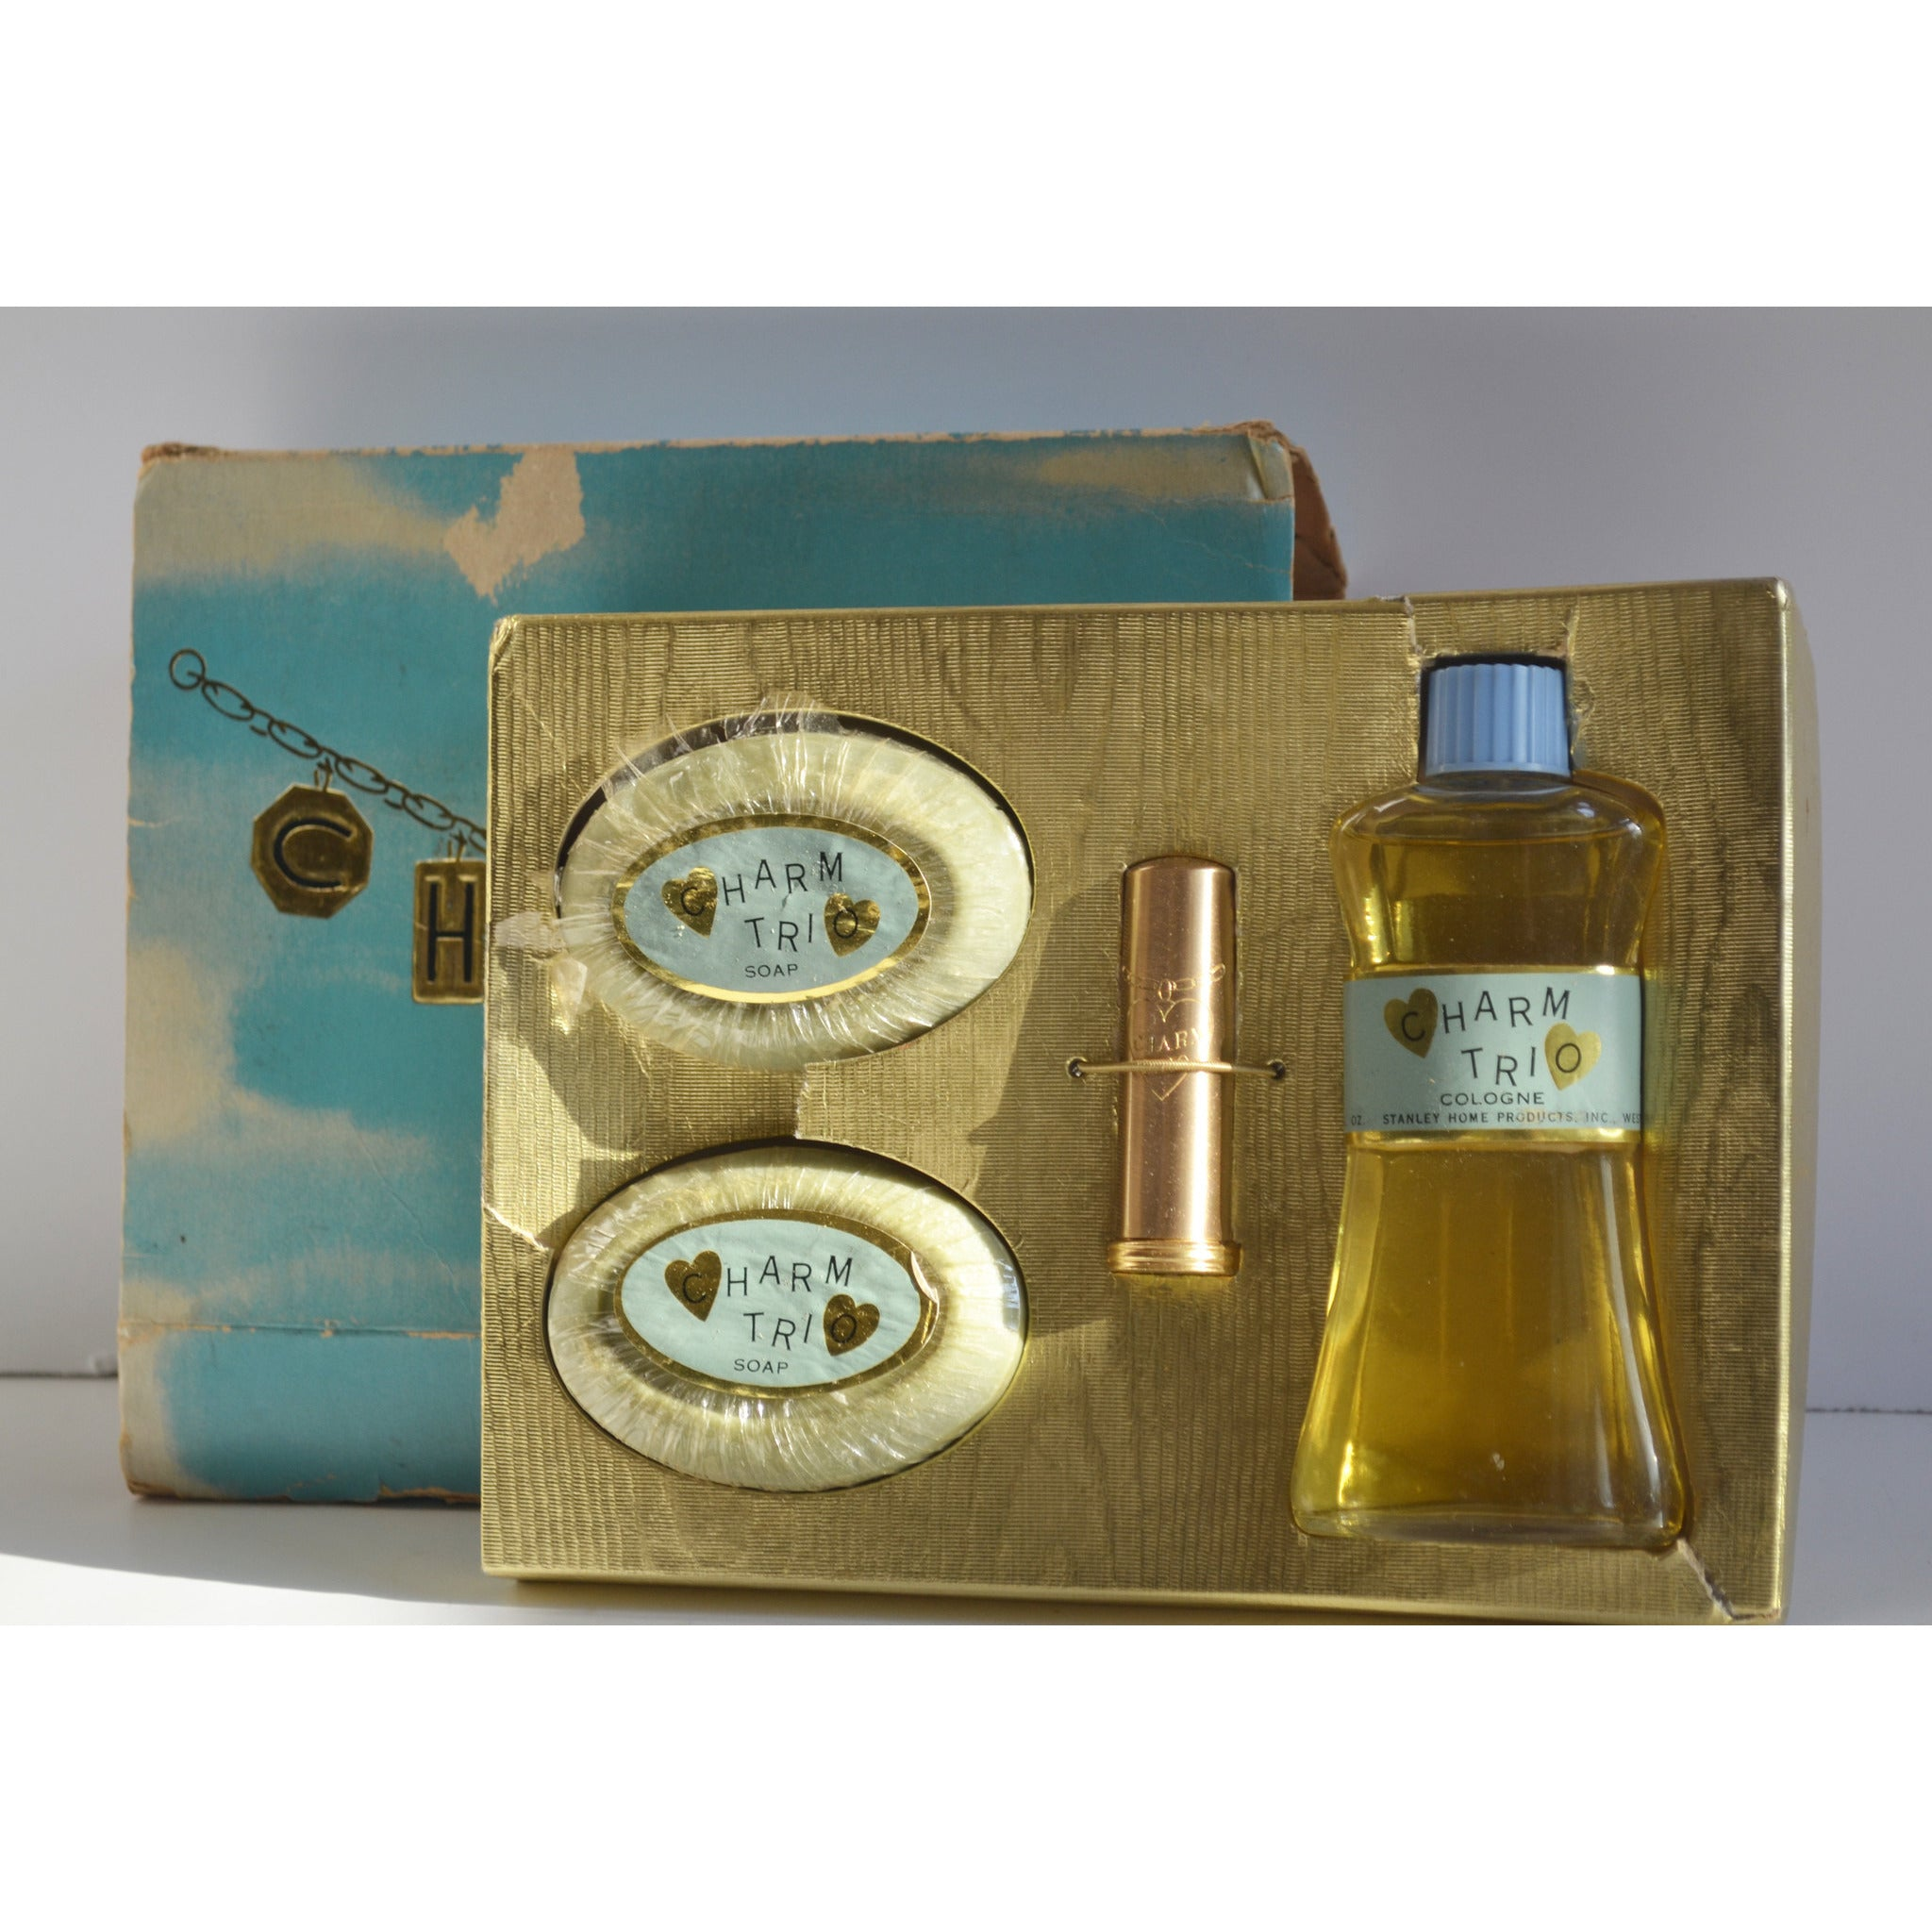 Vintage Charm Trio Cologne Set